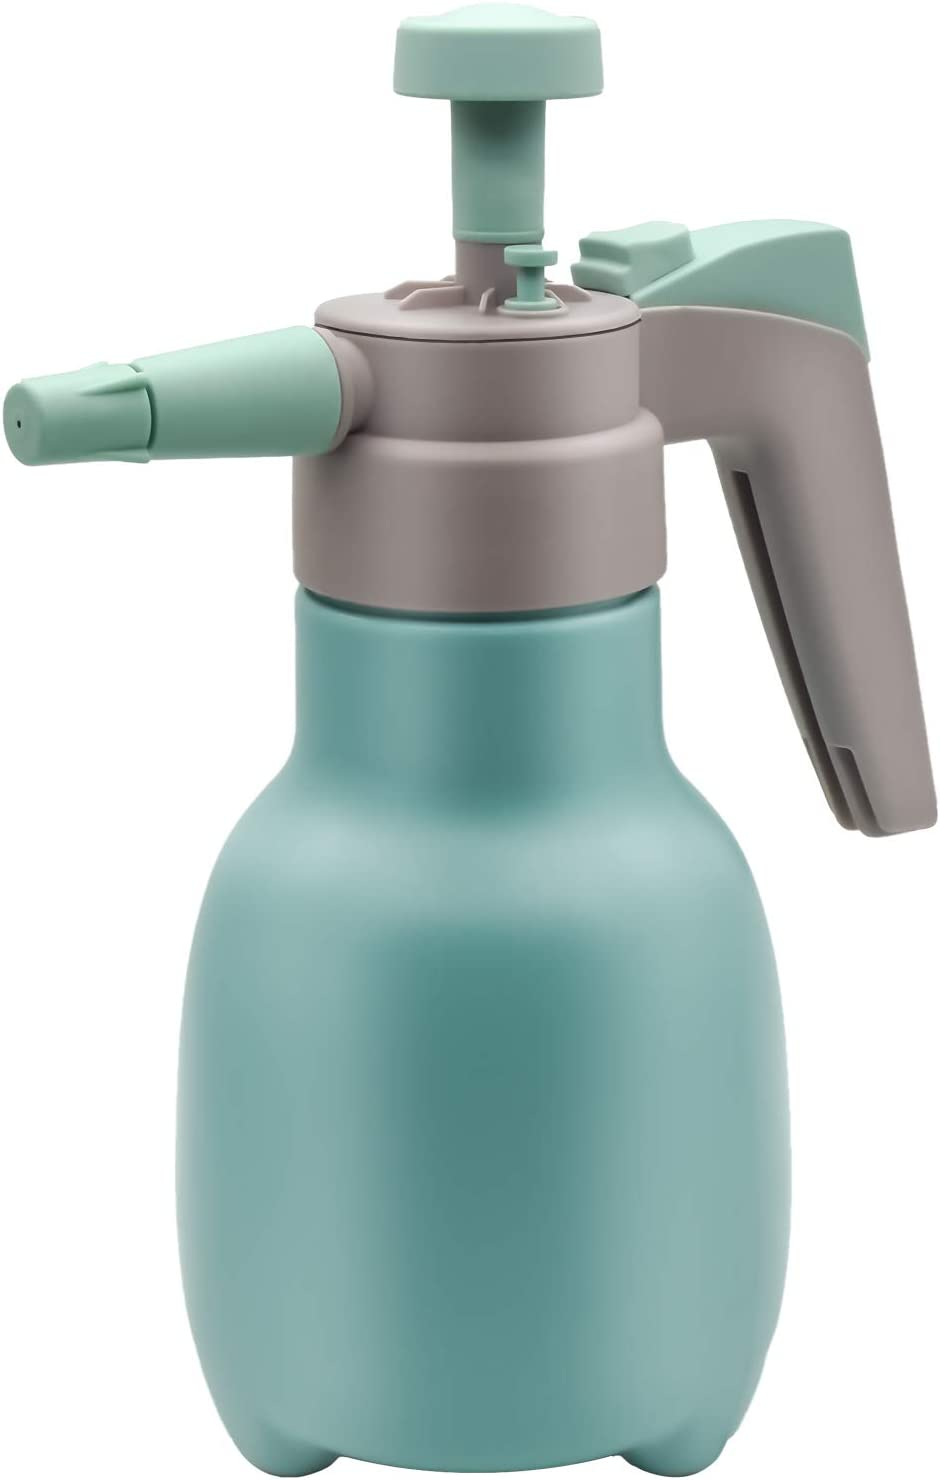 FEEMIC Garden Sprayer Pump Pressure Water Sprayers, Hand Sprayer Bottle can with Adjustable Nozzle for Weeds/Watering/Home Cleaning/Car Washing (Light Blue)